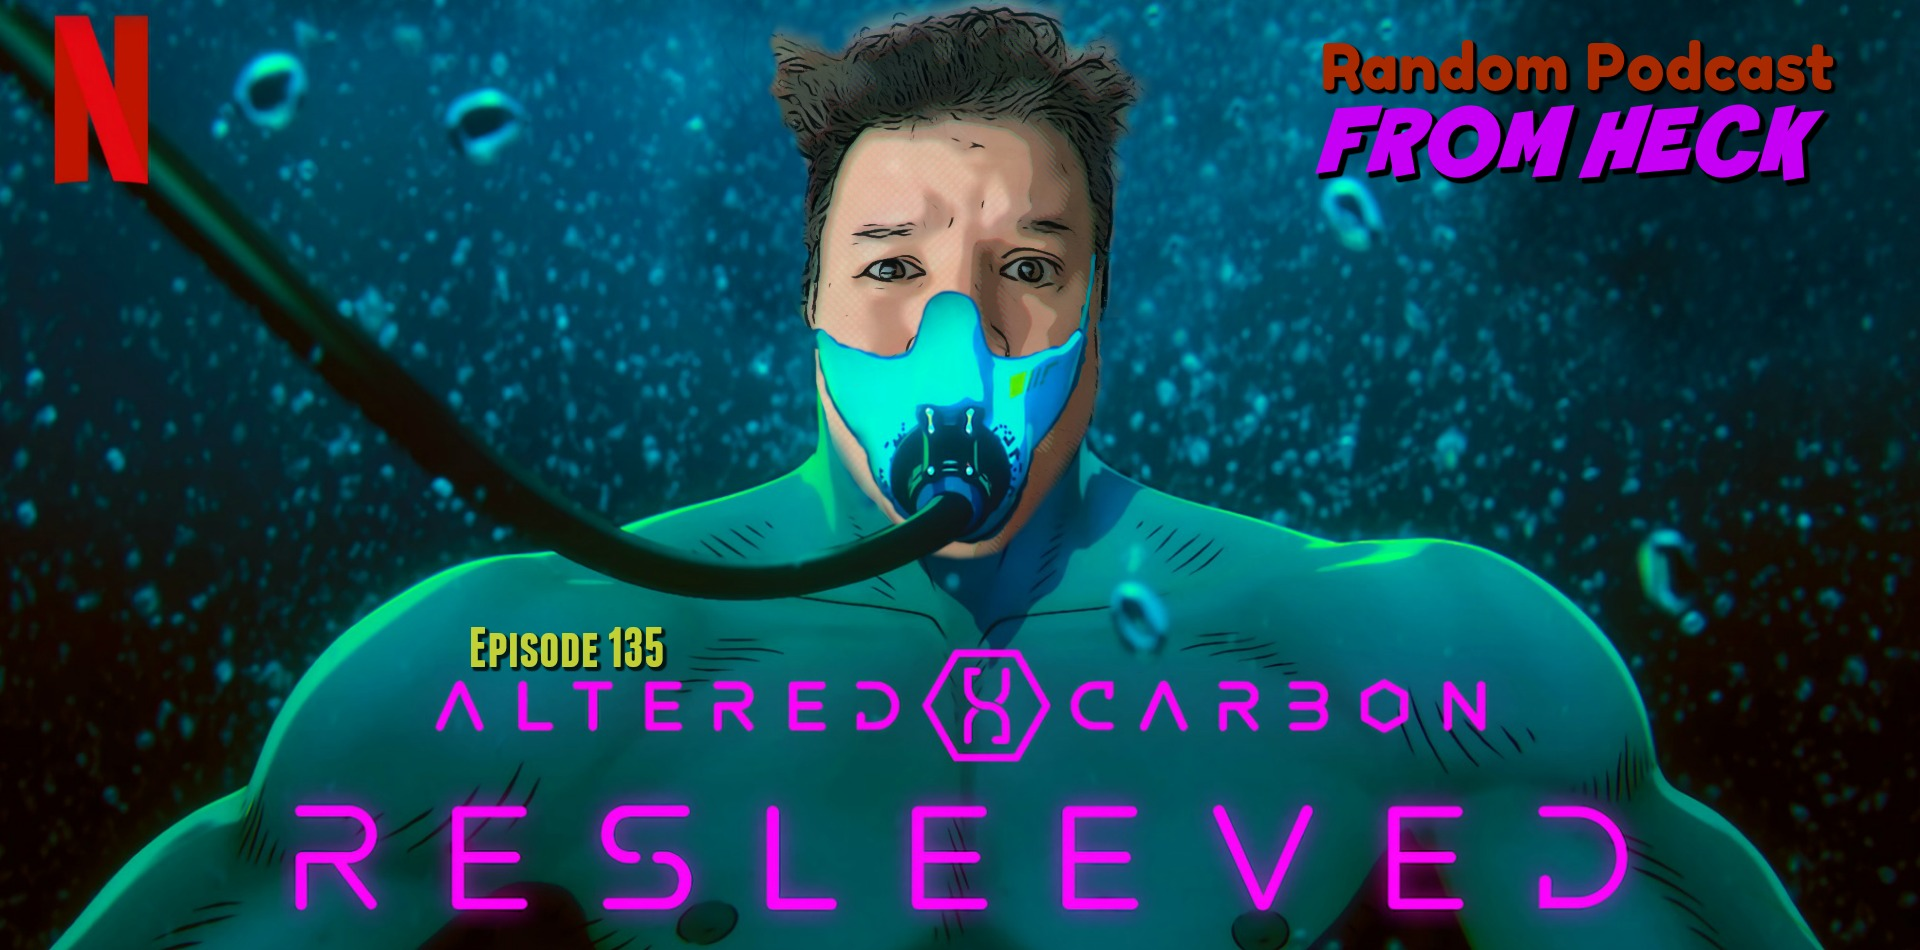 Random Podcast From Heck Episode 135 Altered Carbon Resleeved Star Trek Picard Spenser Confidential And More What The Heck Is Going On